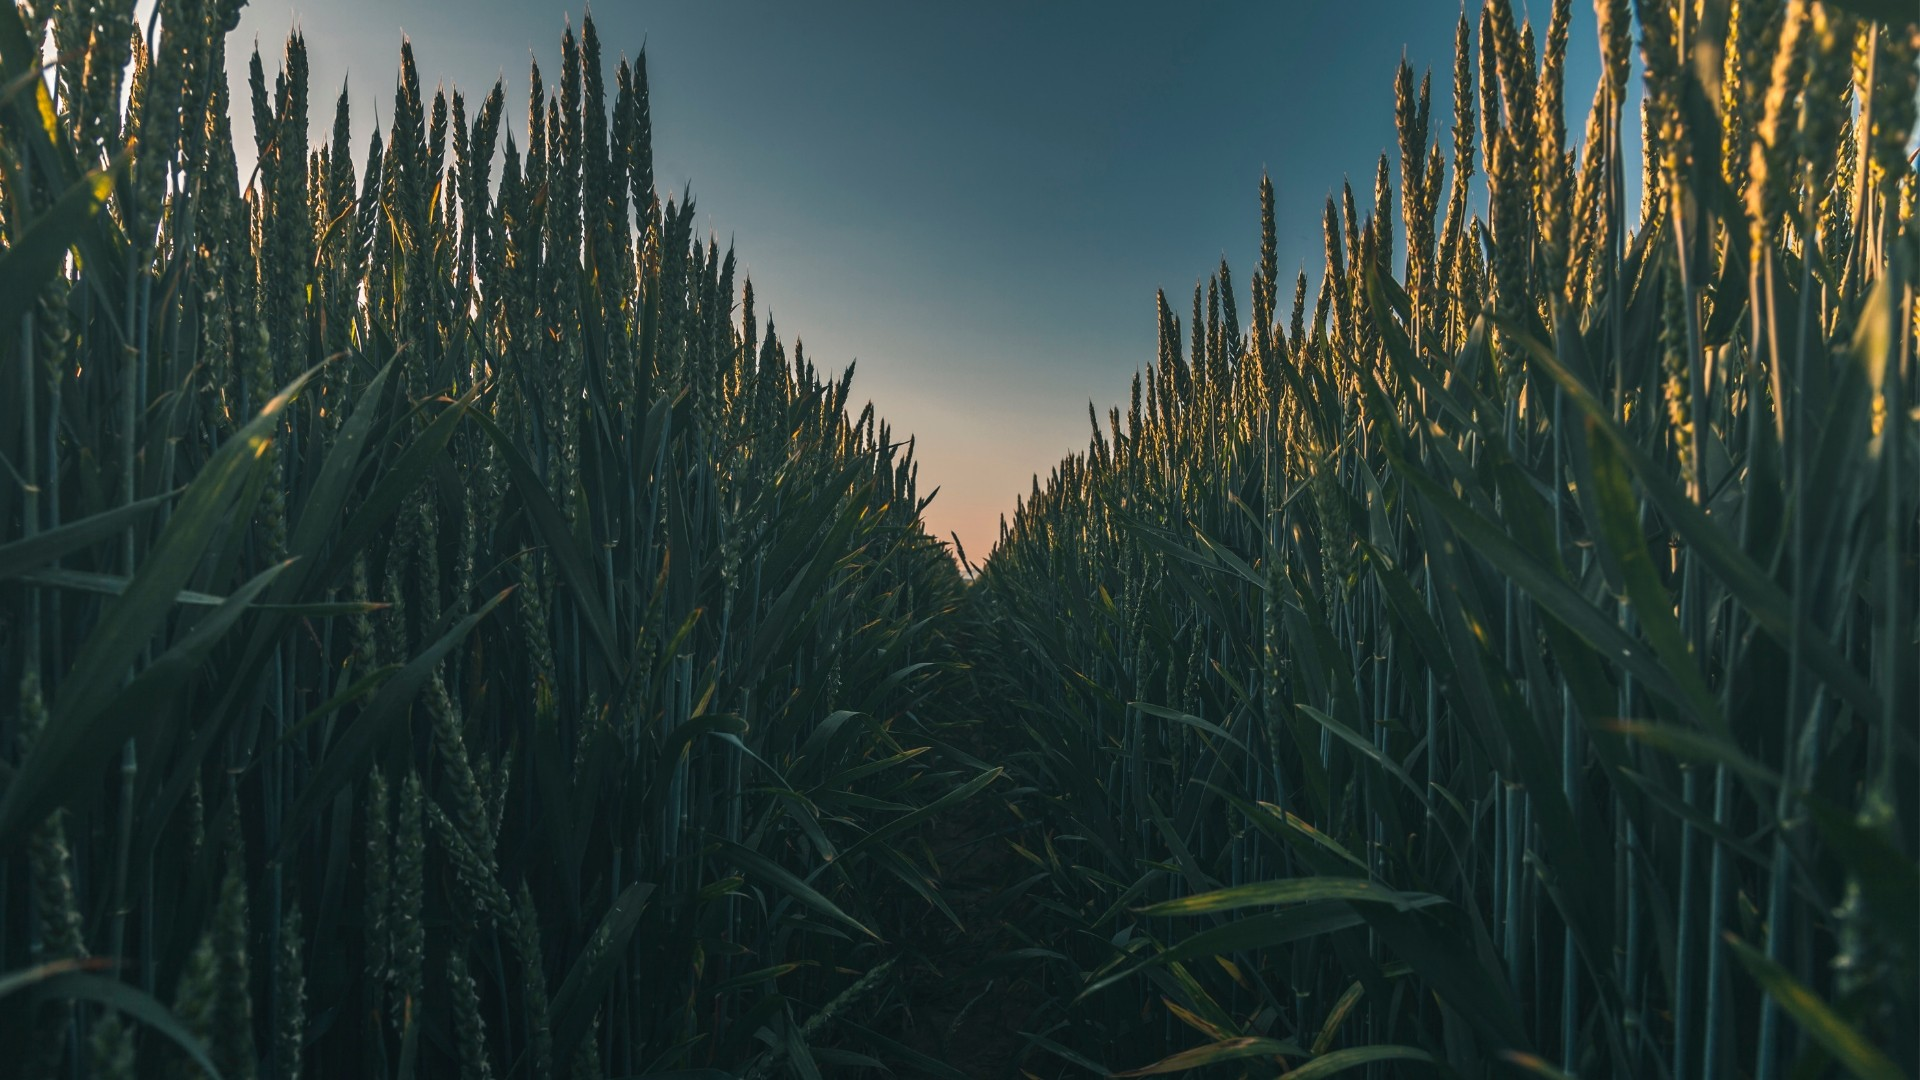 Cornfield Download Wallpaper